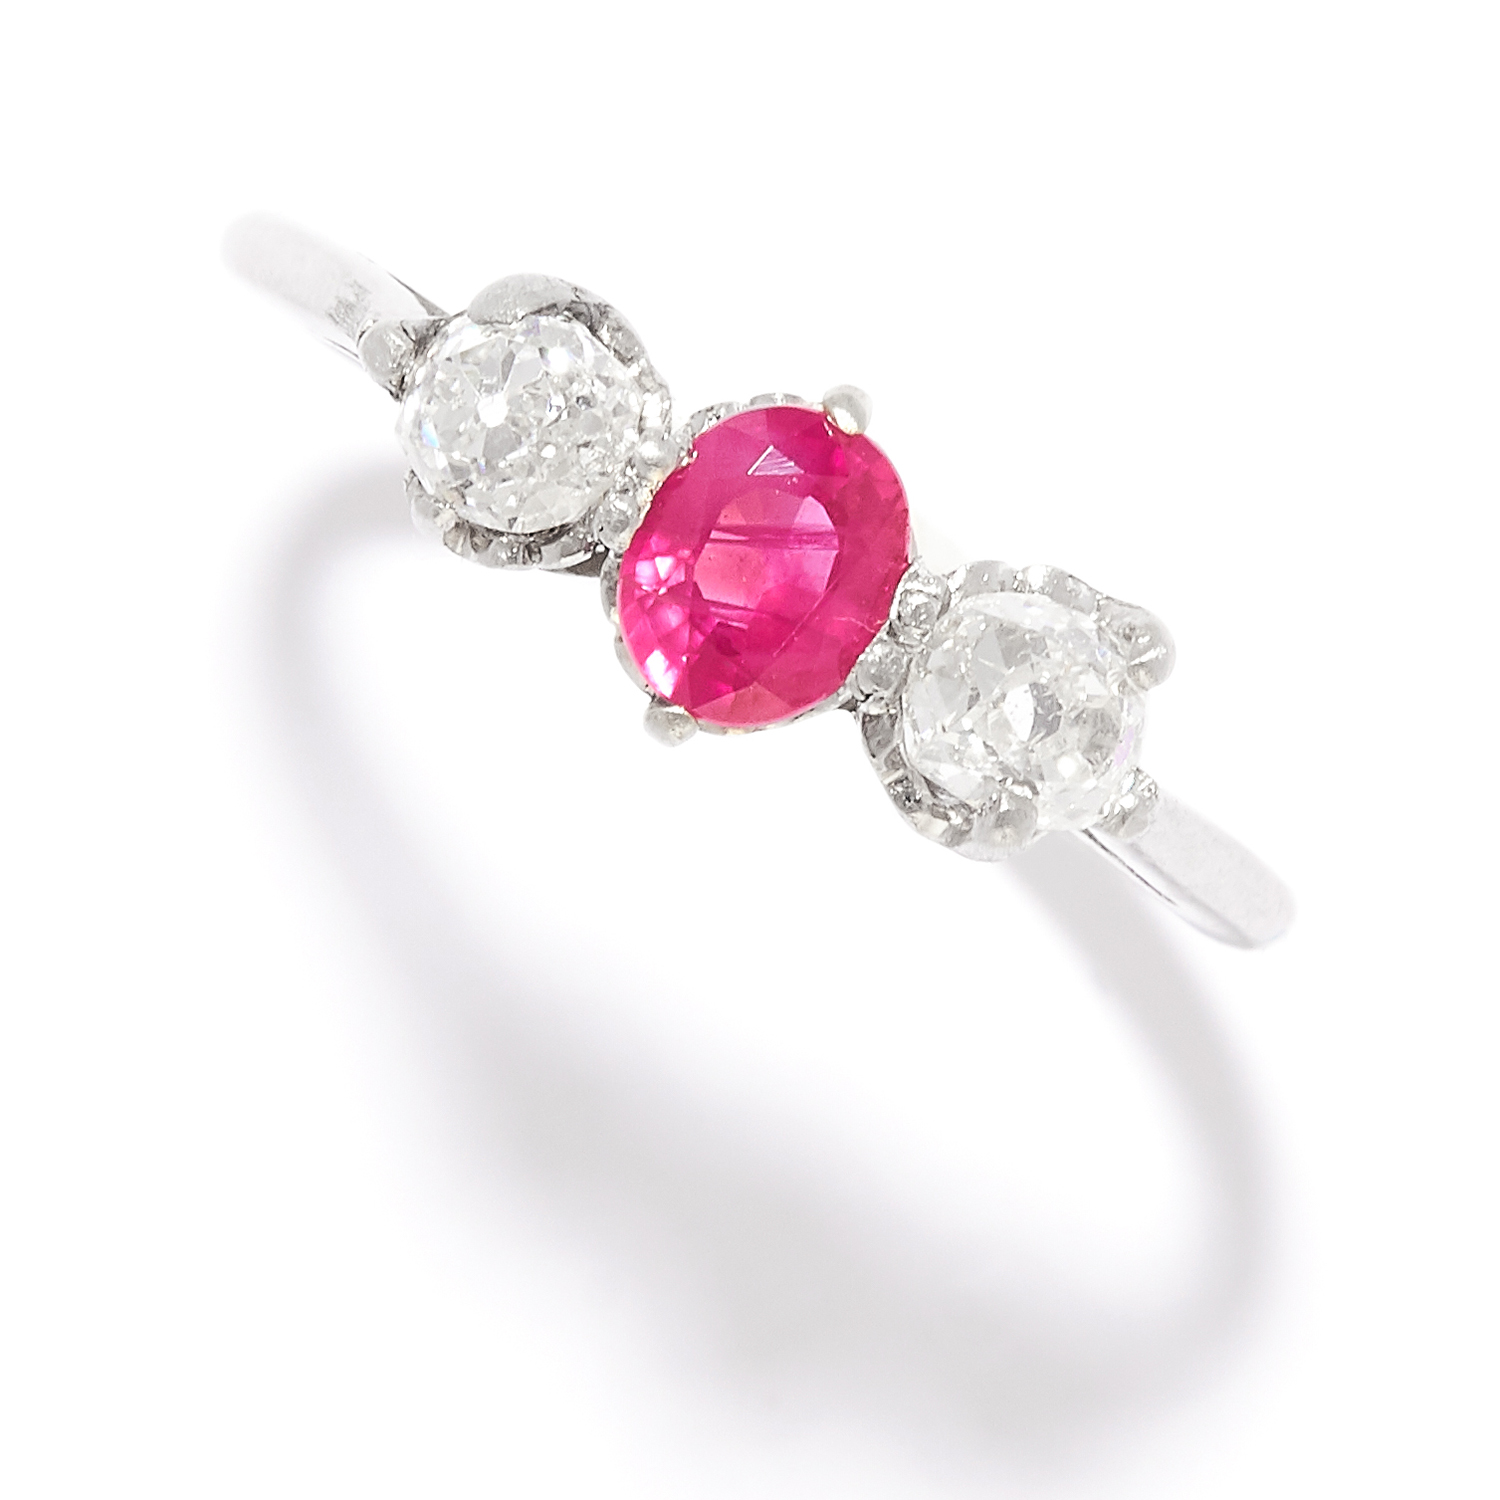 Los 44 - RUBY AND DIAMOND THREE STONE RING in gold or platinum, set with an oval cut ruby between two old cut